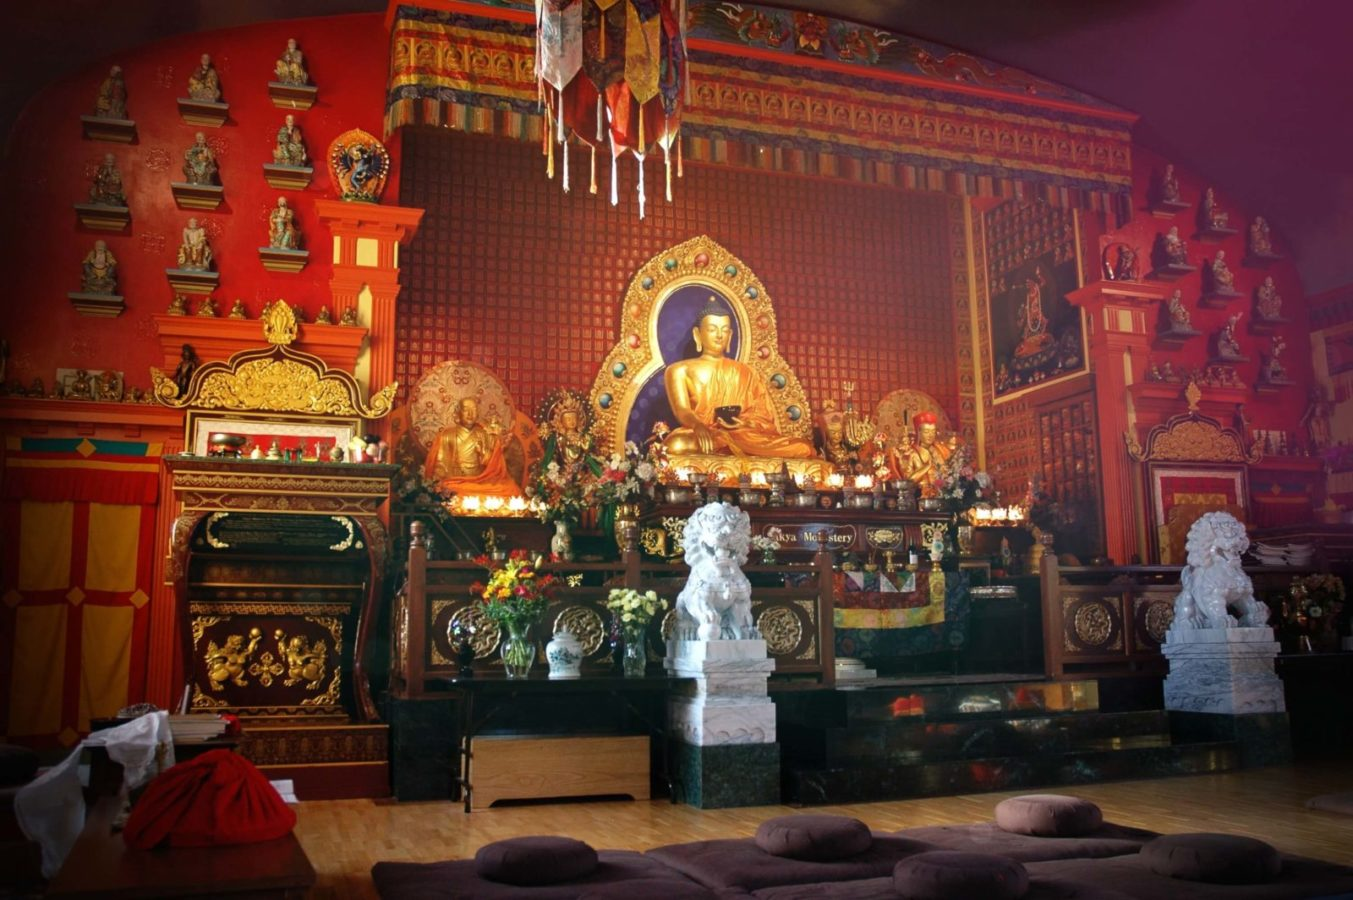 sculpture of the gilded buddha seated in the hall of the monastery surrounded by other deities